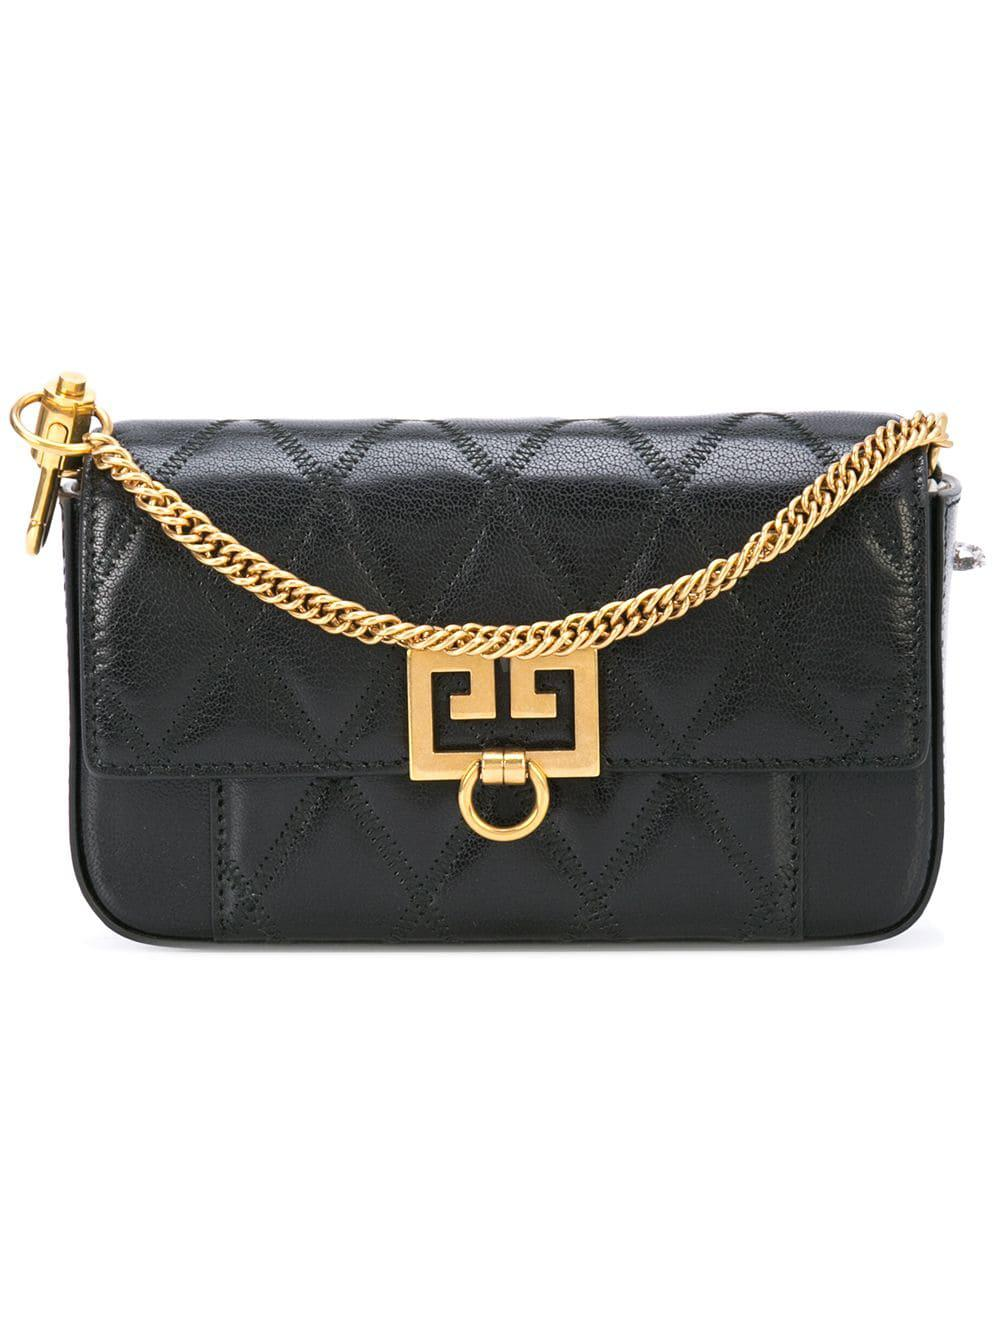 a2647e0d020a Lyst - Givenchy Pocket Mini Leather Beltbag in Black